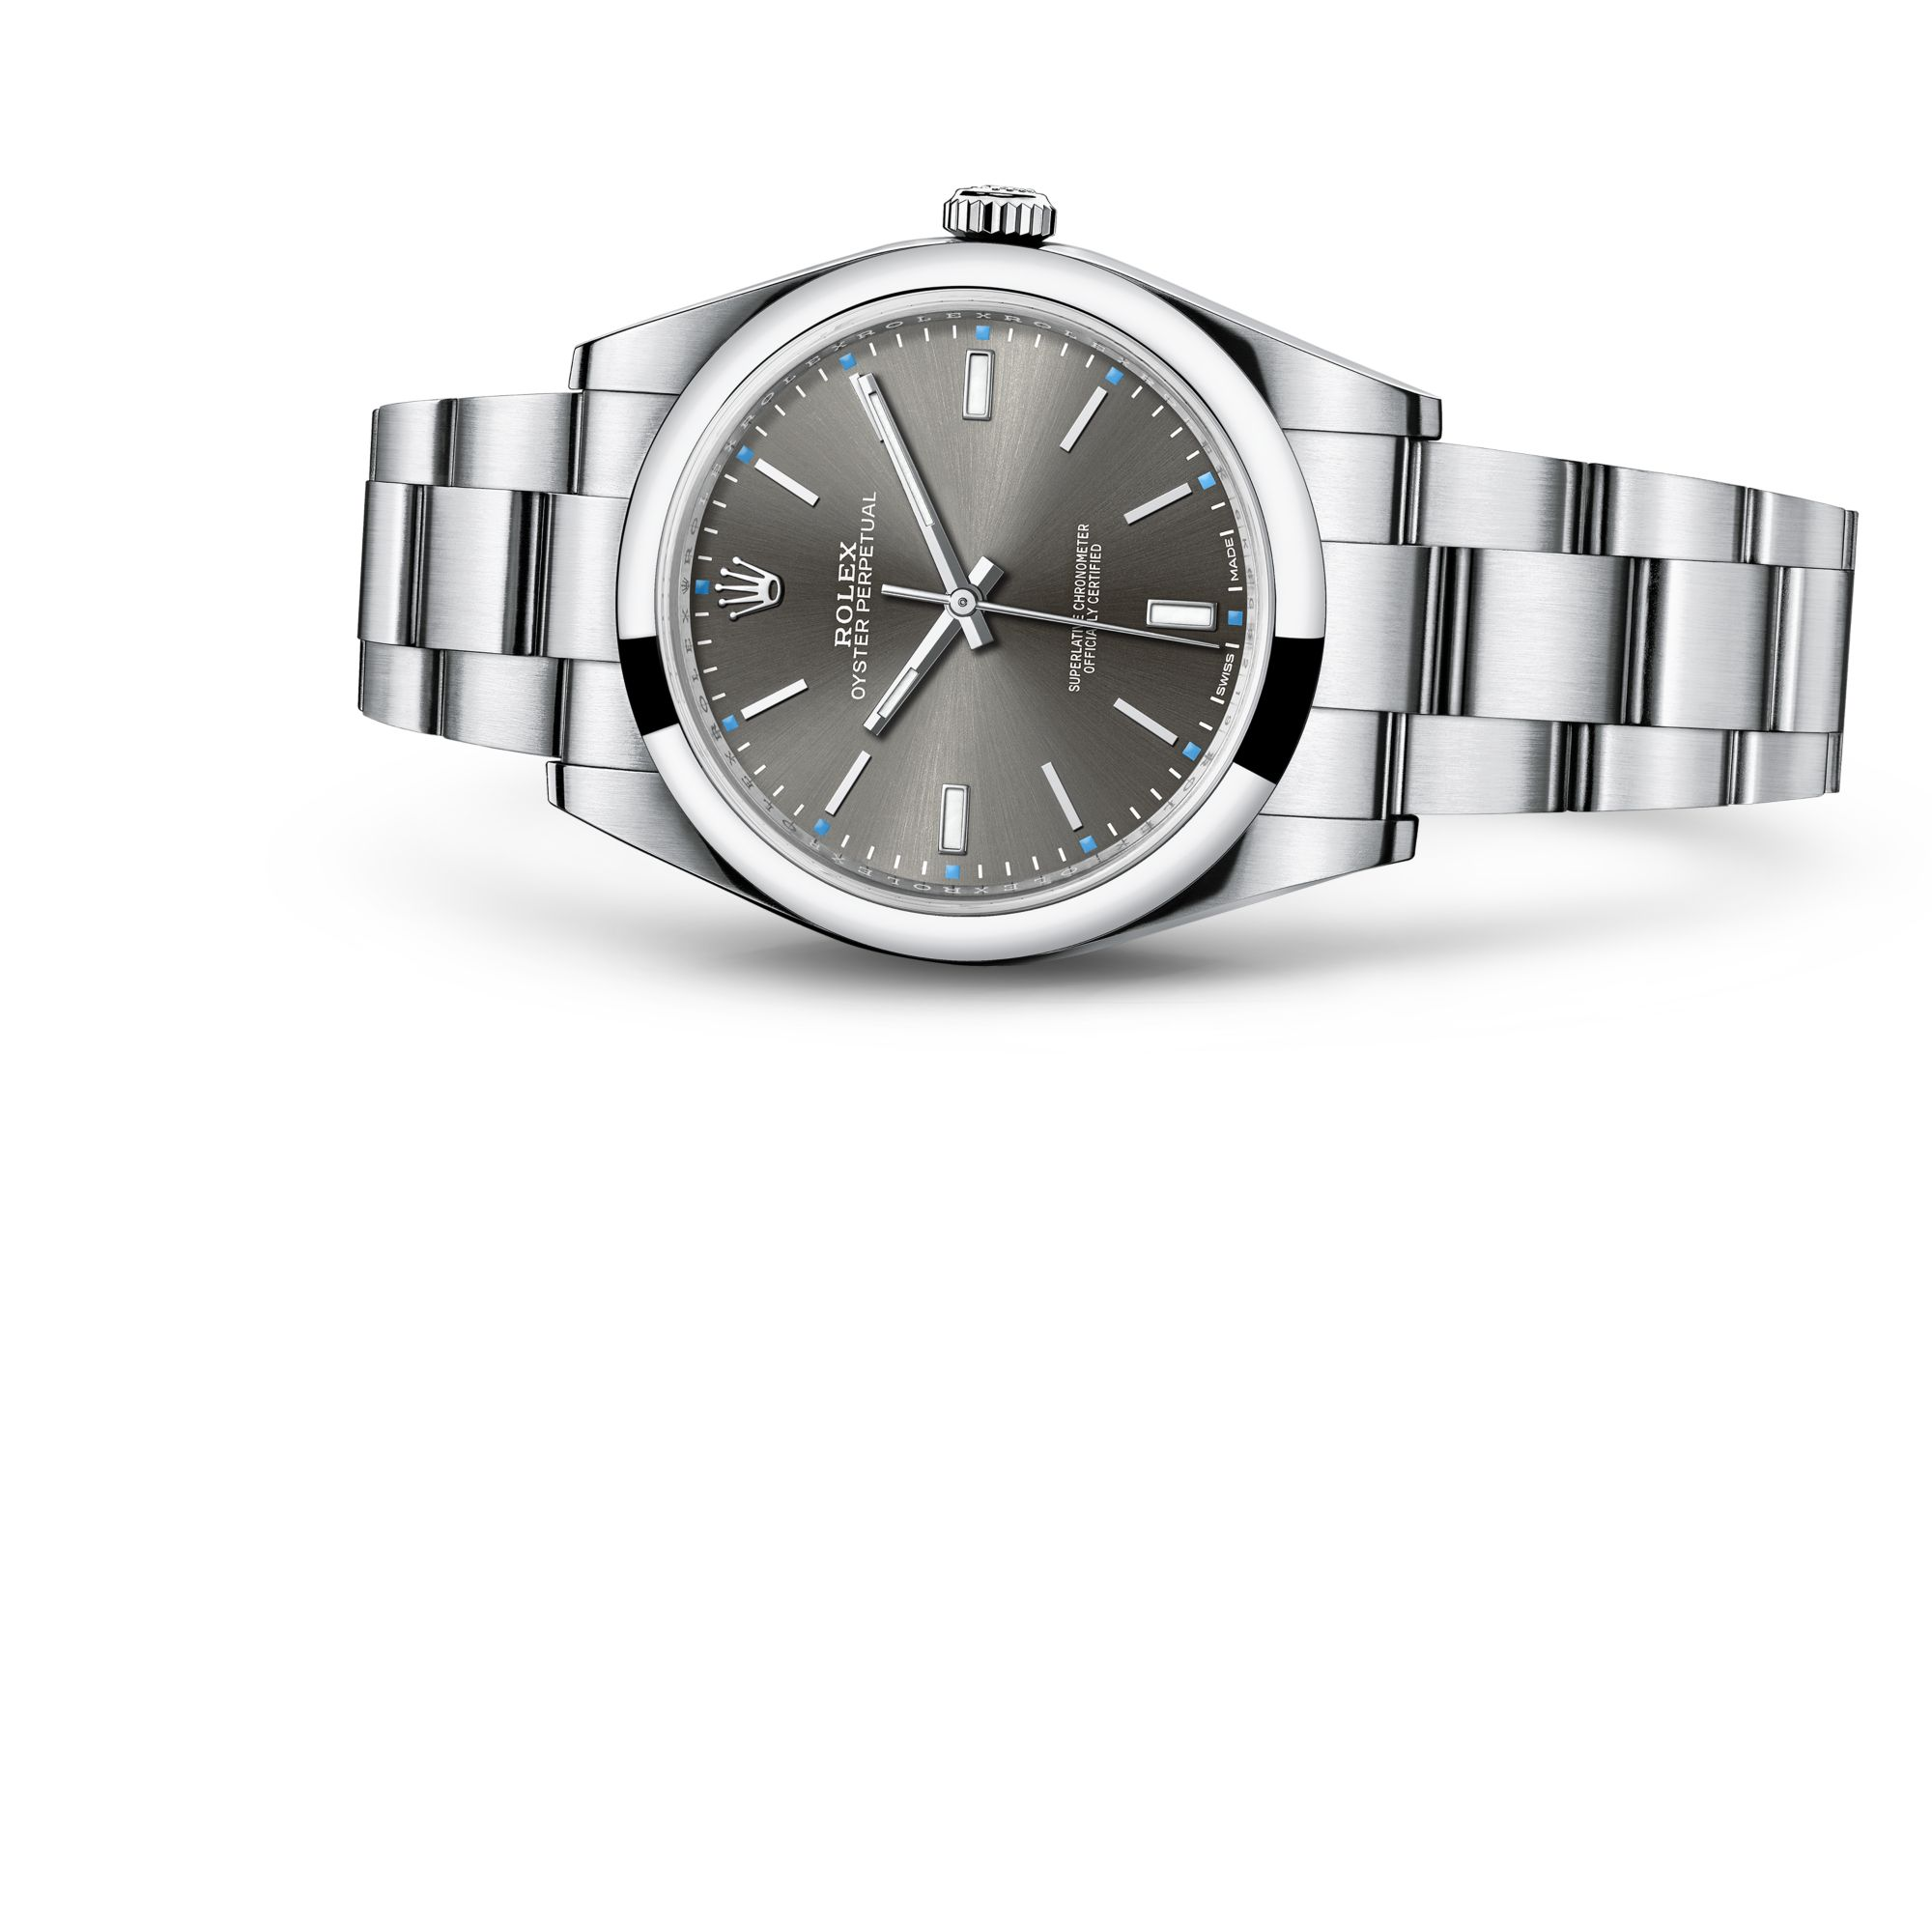 Rolex Oyster Perpetual 39 M114300-0001